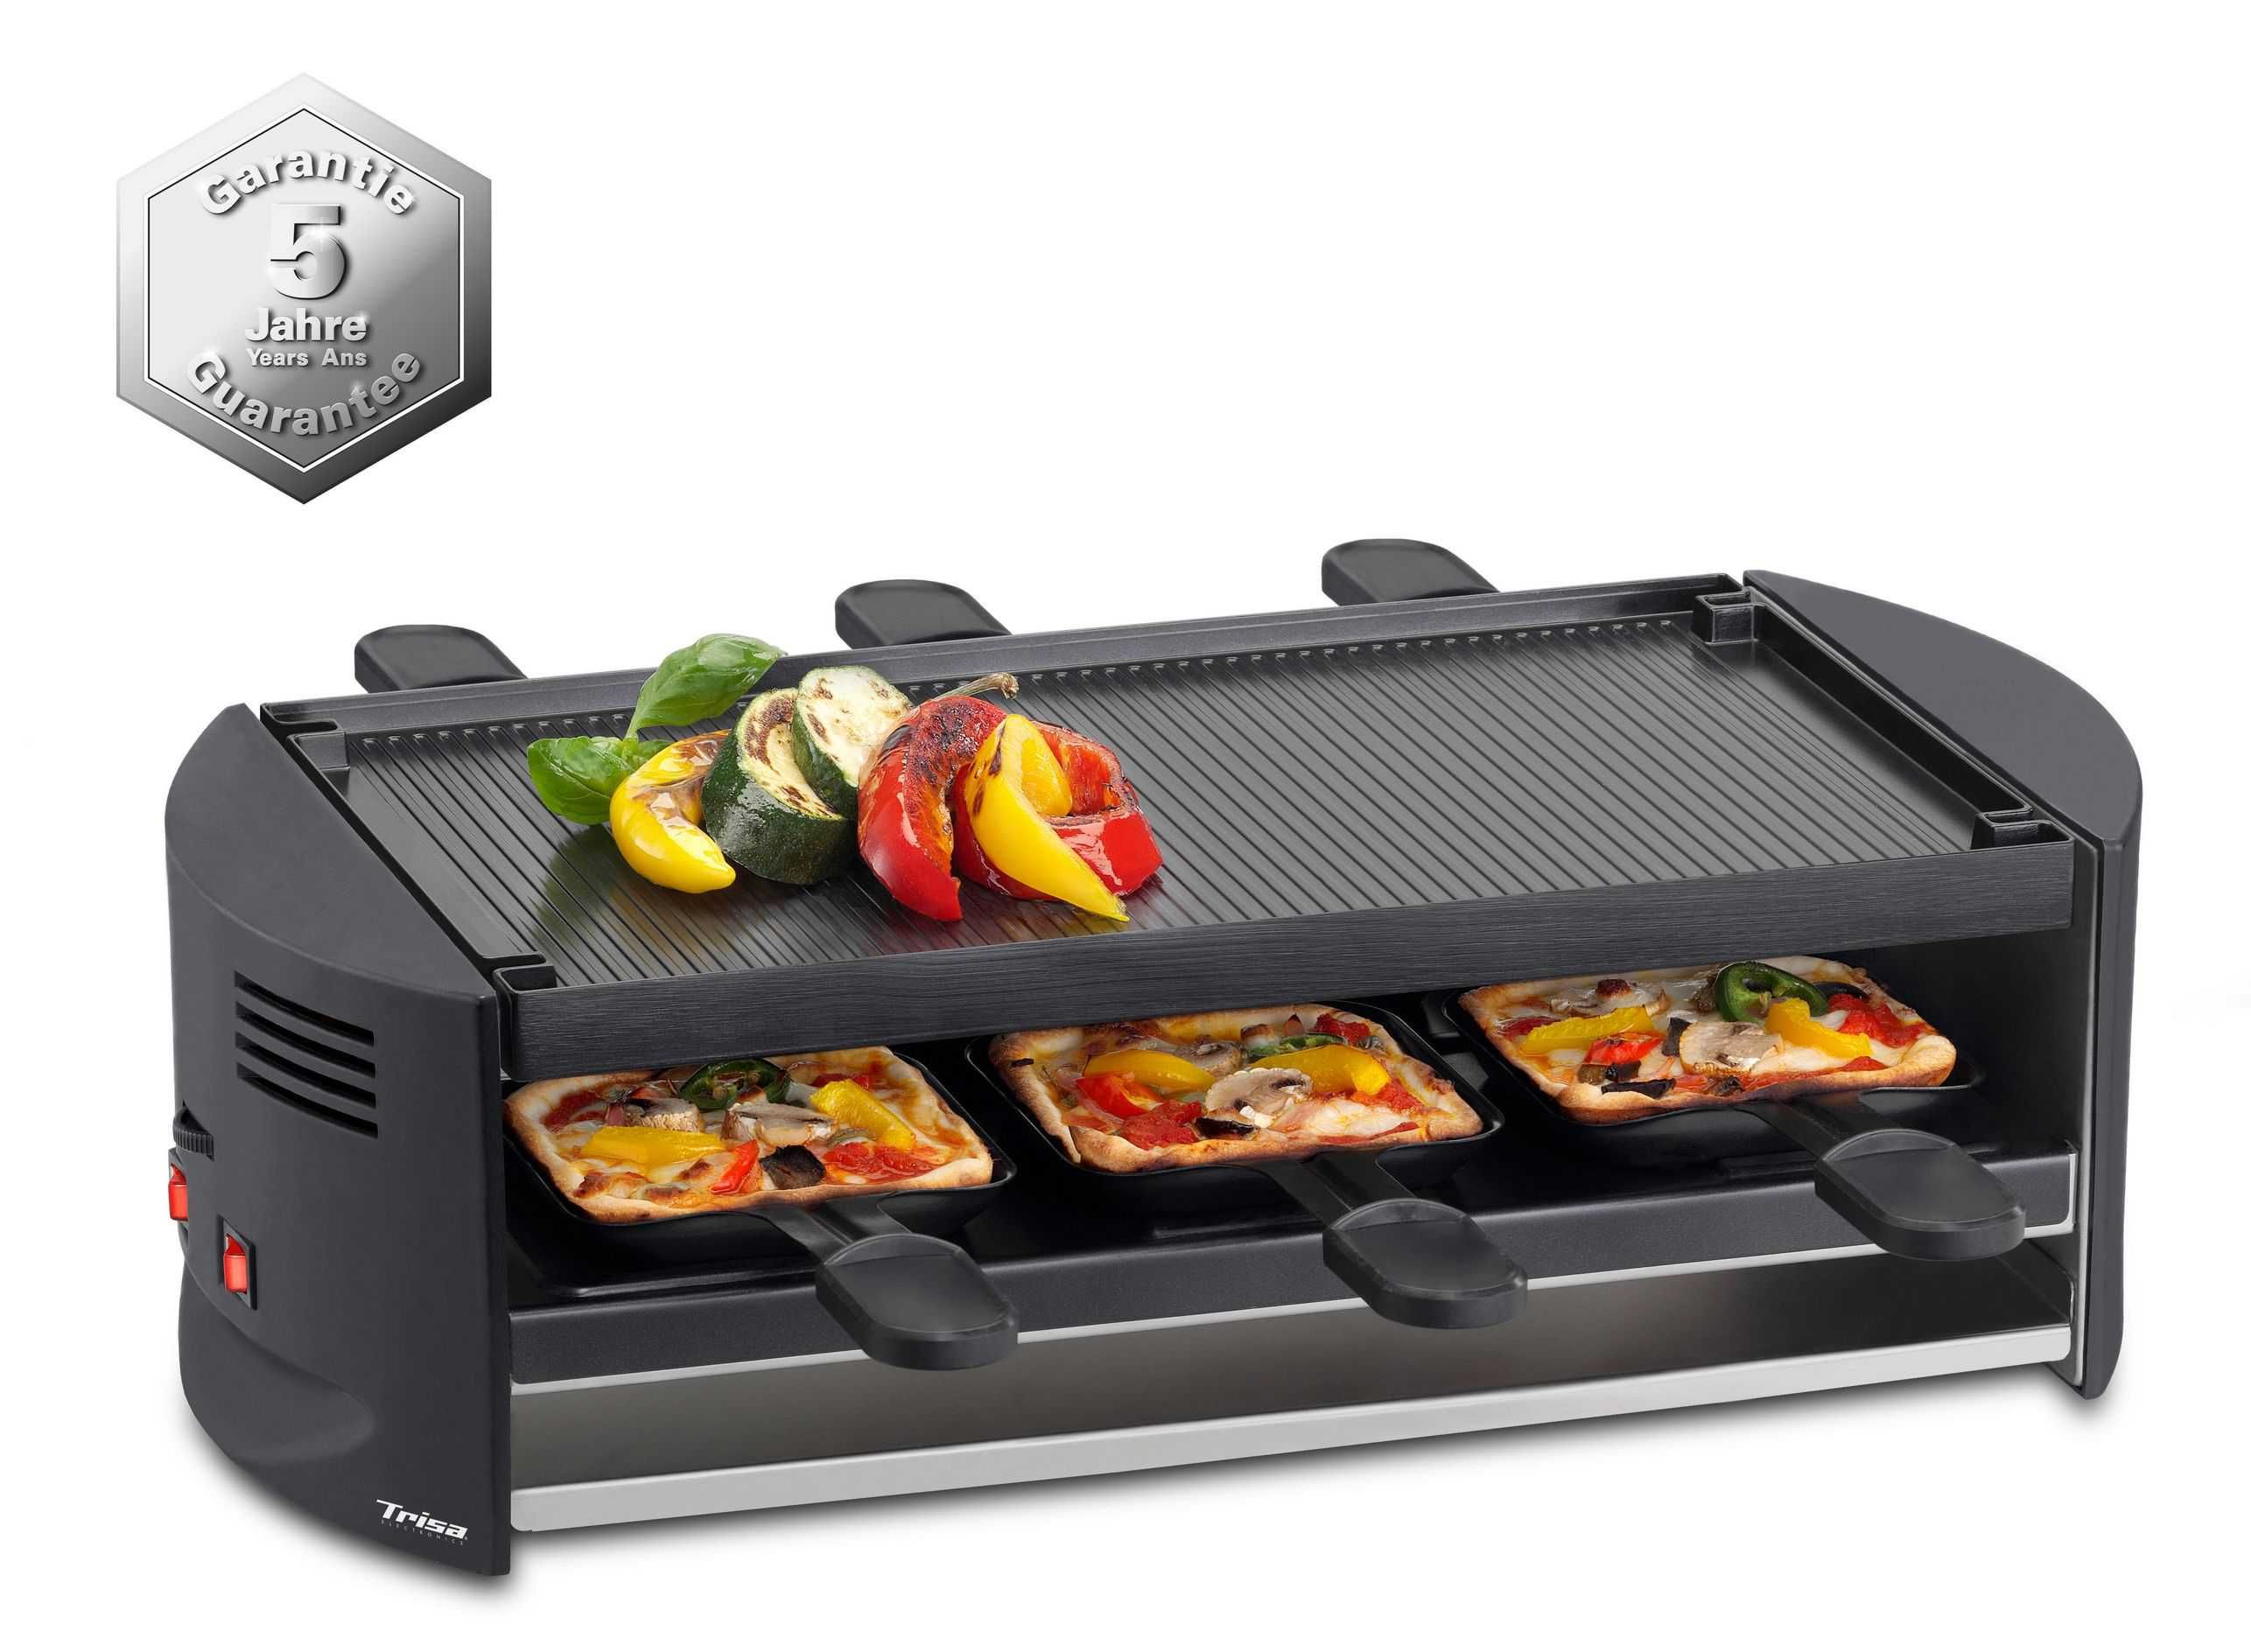 Trisa Pizza Grill Pizza Raclette Perfect 6 Personen Günstig Kaufen Raclette Grill Trisa 7590 4245 F Pizza Raclette Pizza Raclette Ofen